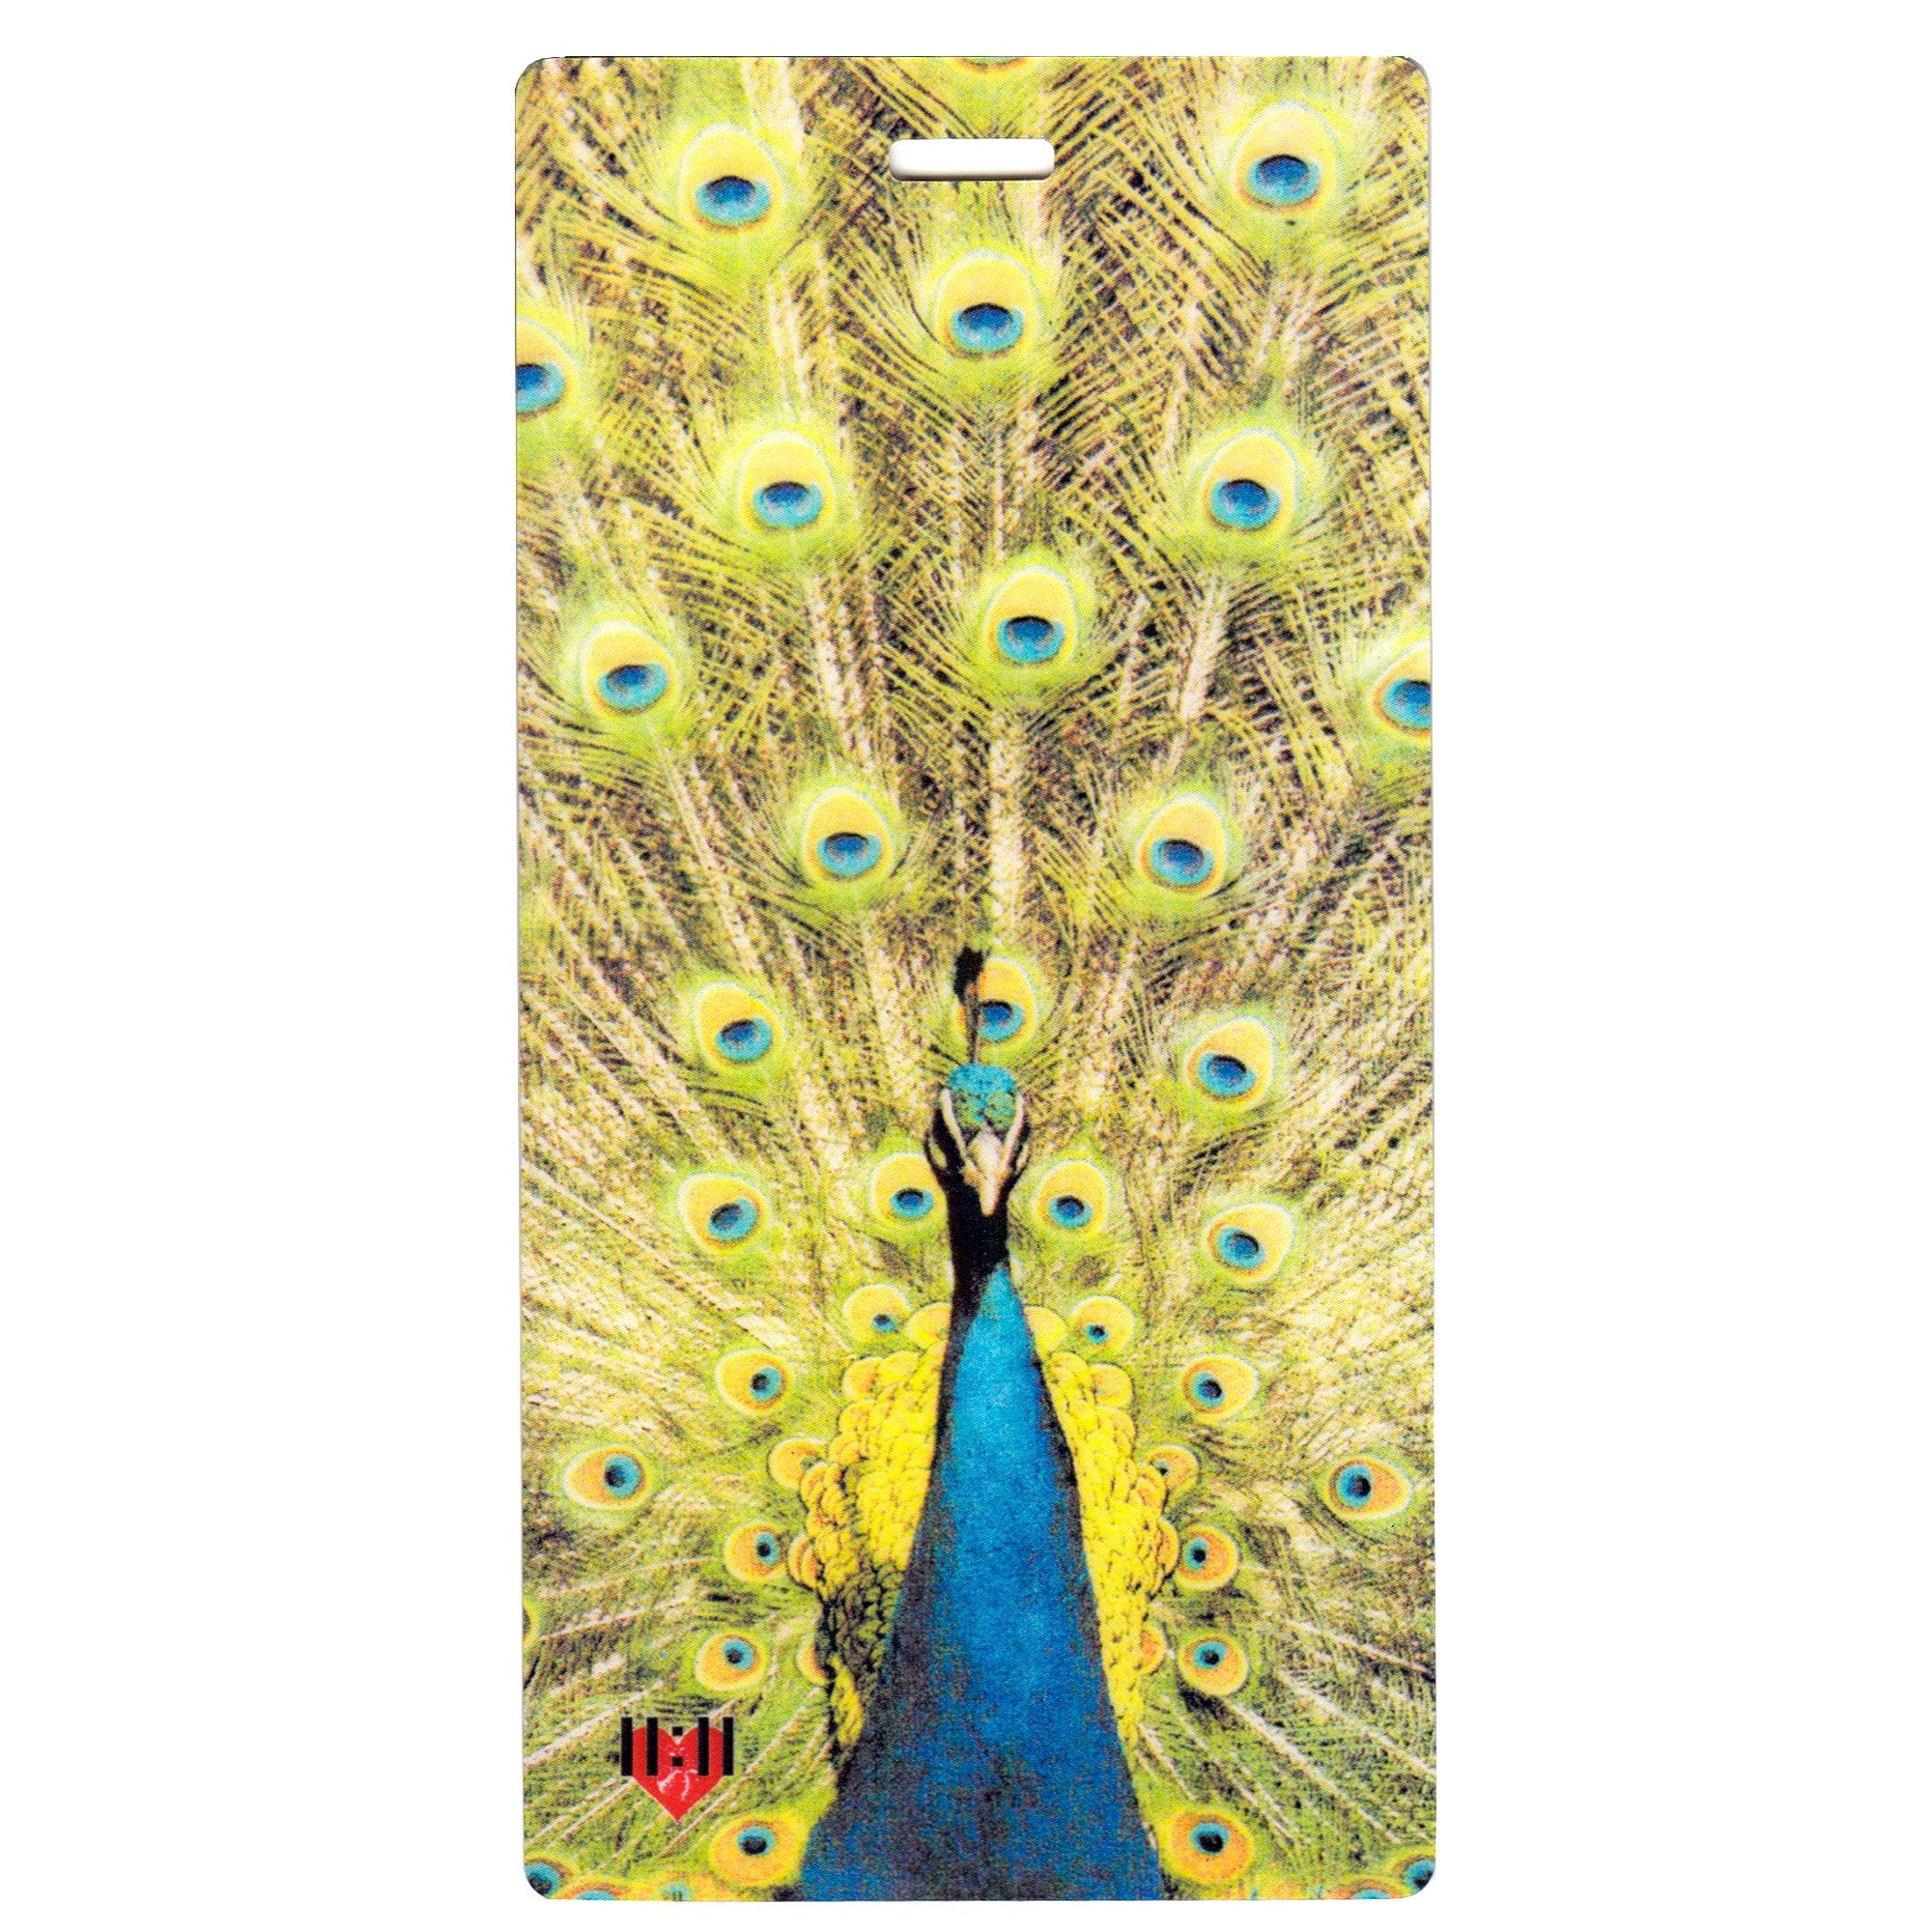 Proud Peacock Luggage Bag Tag Set - 2 pc, Large by 11:11 Enterprises